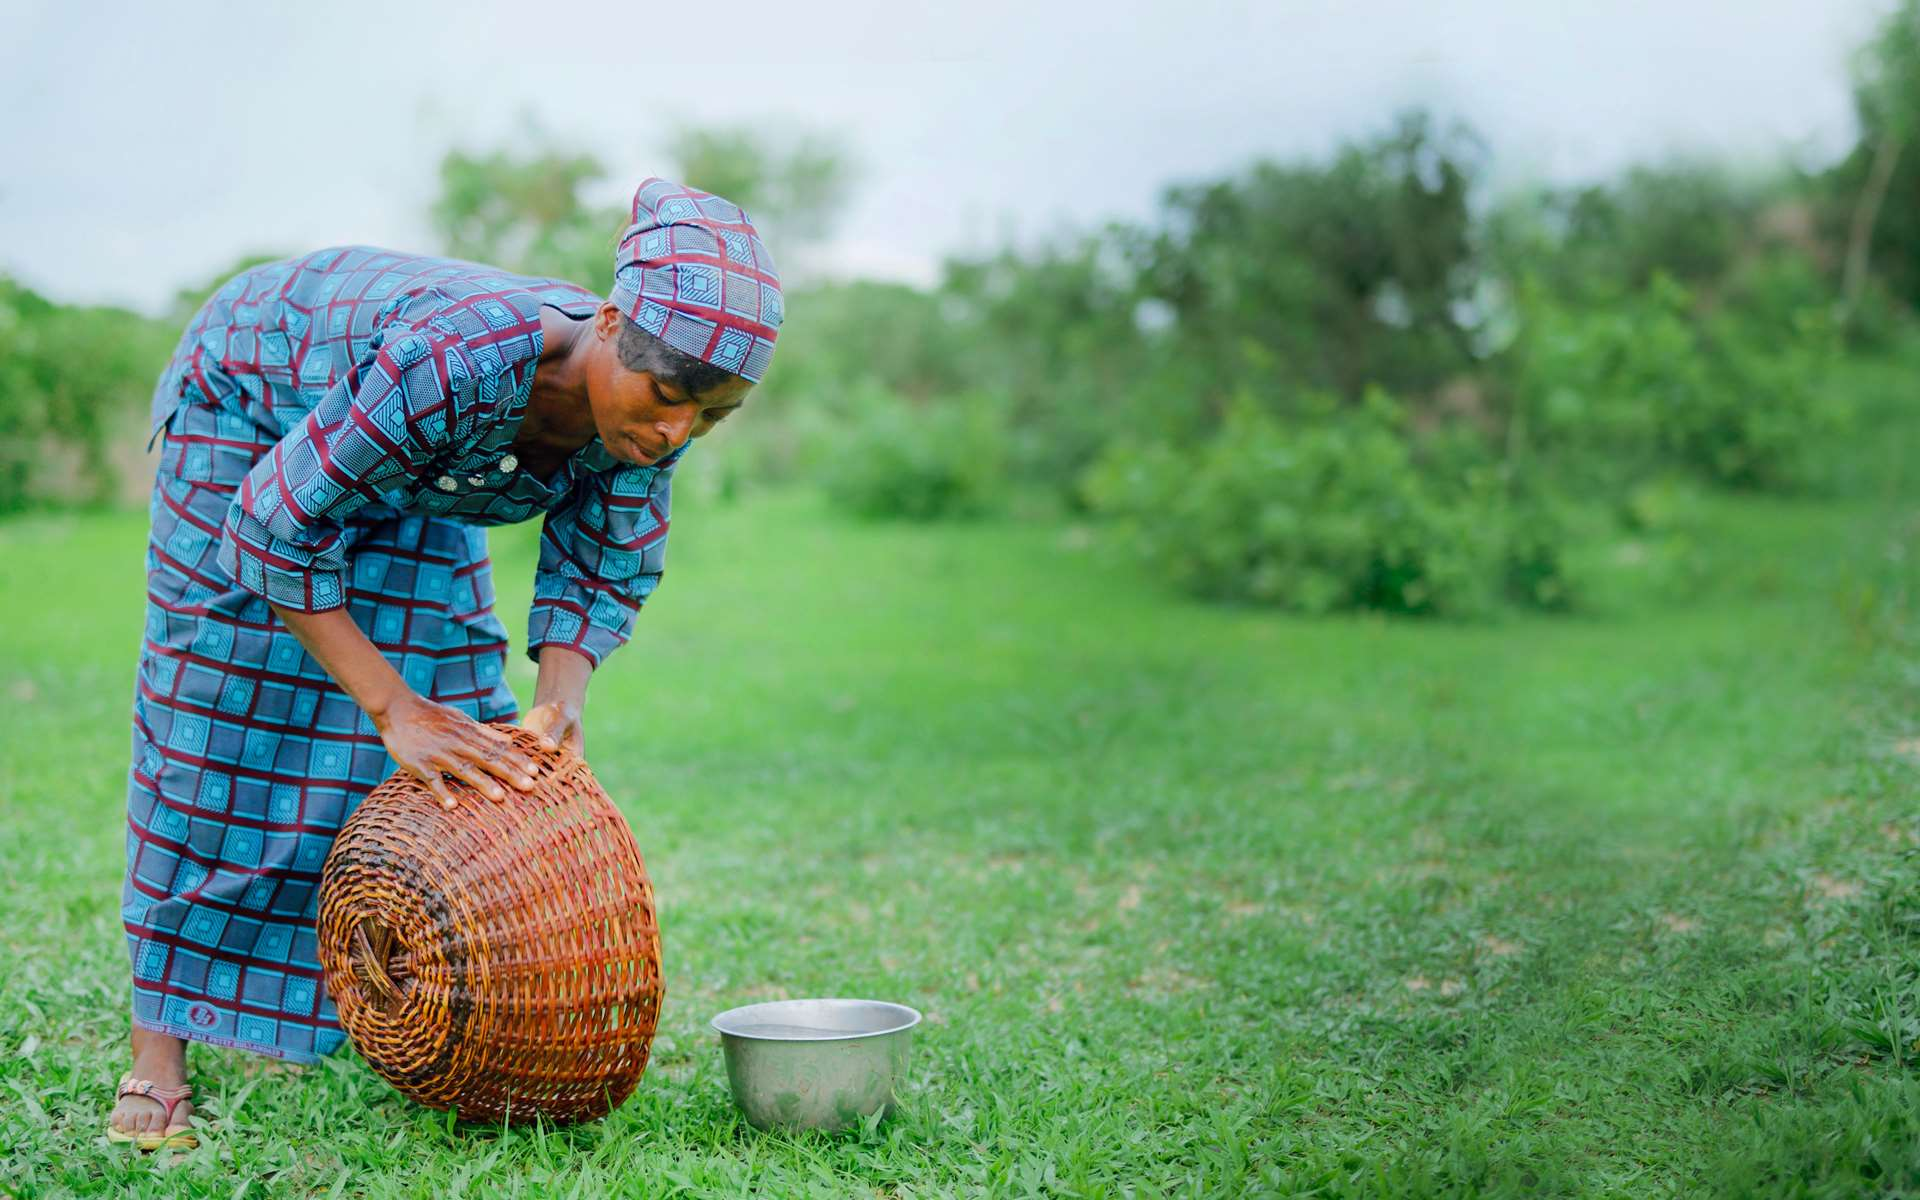 Kapouri, a woman in Burkina Faso, washing out a bowl used to collect shea nuts.